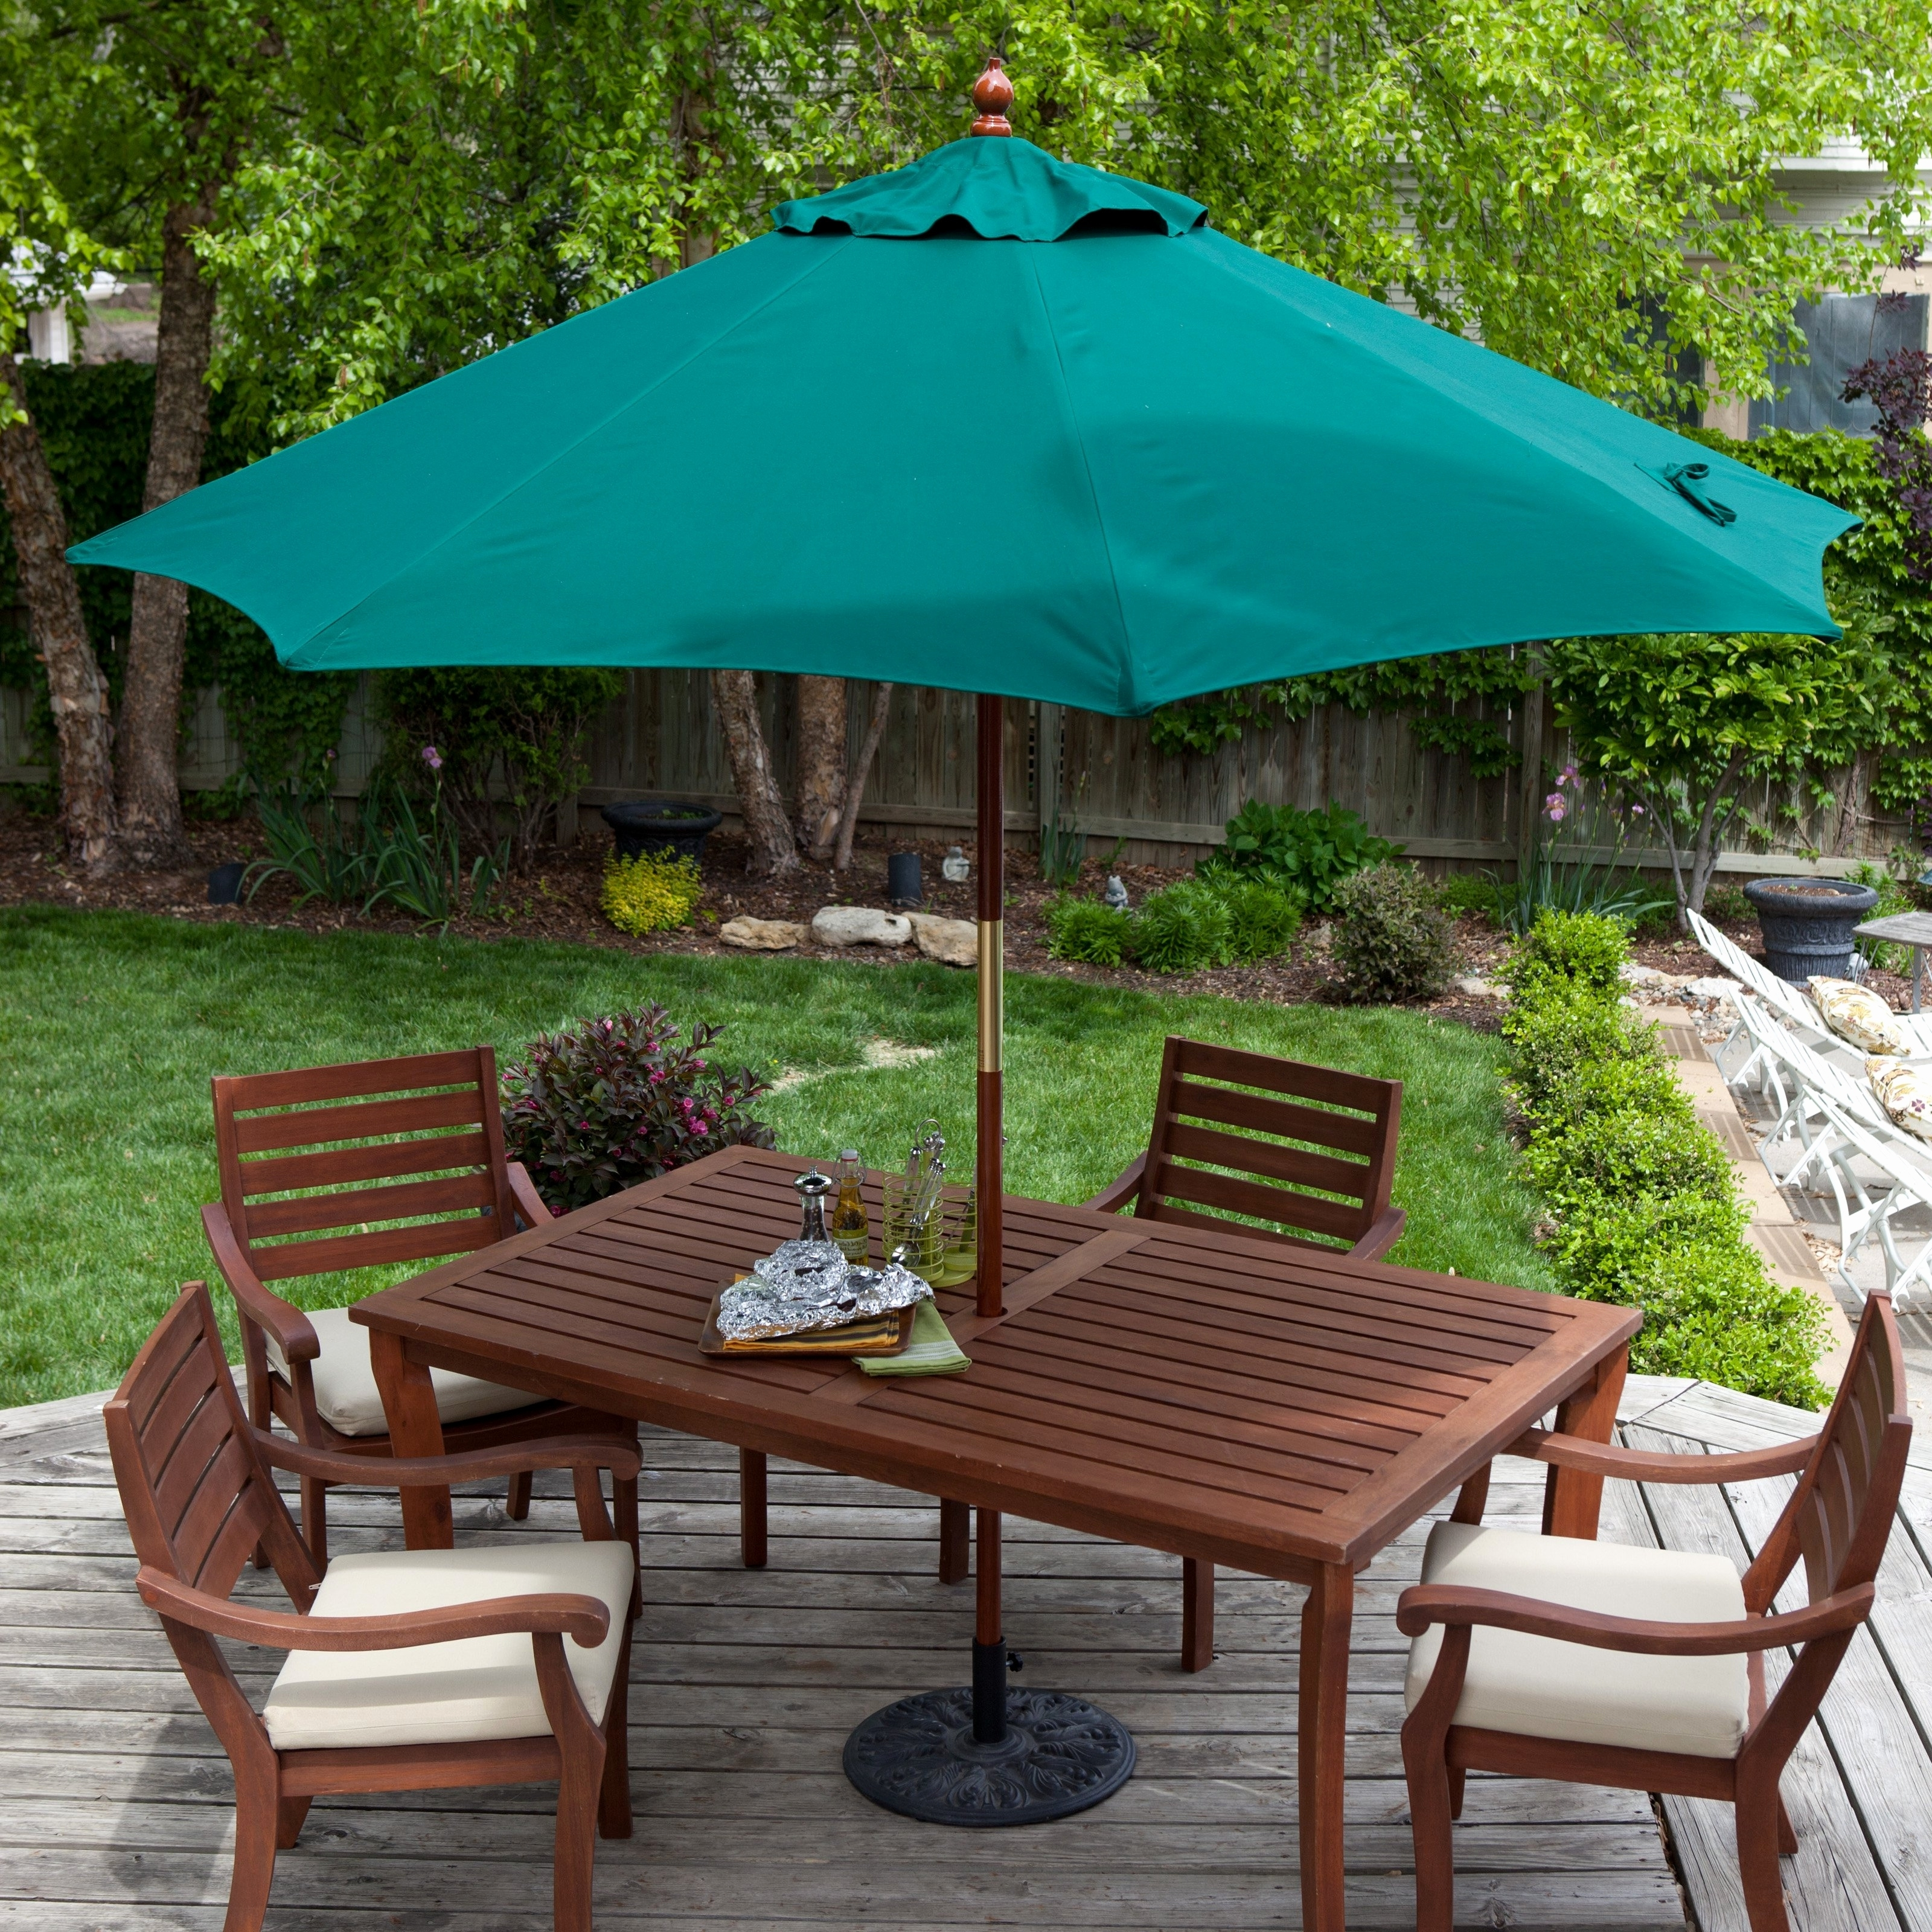 Small Patio Tables With Umbrellas With Regard To Widely Used Umbrella For Outdoor Table Amazing Patio Chair With 6 Random  (View 19 of 20)